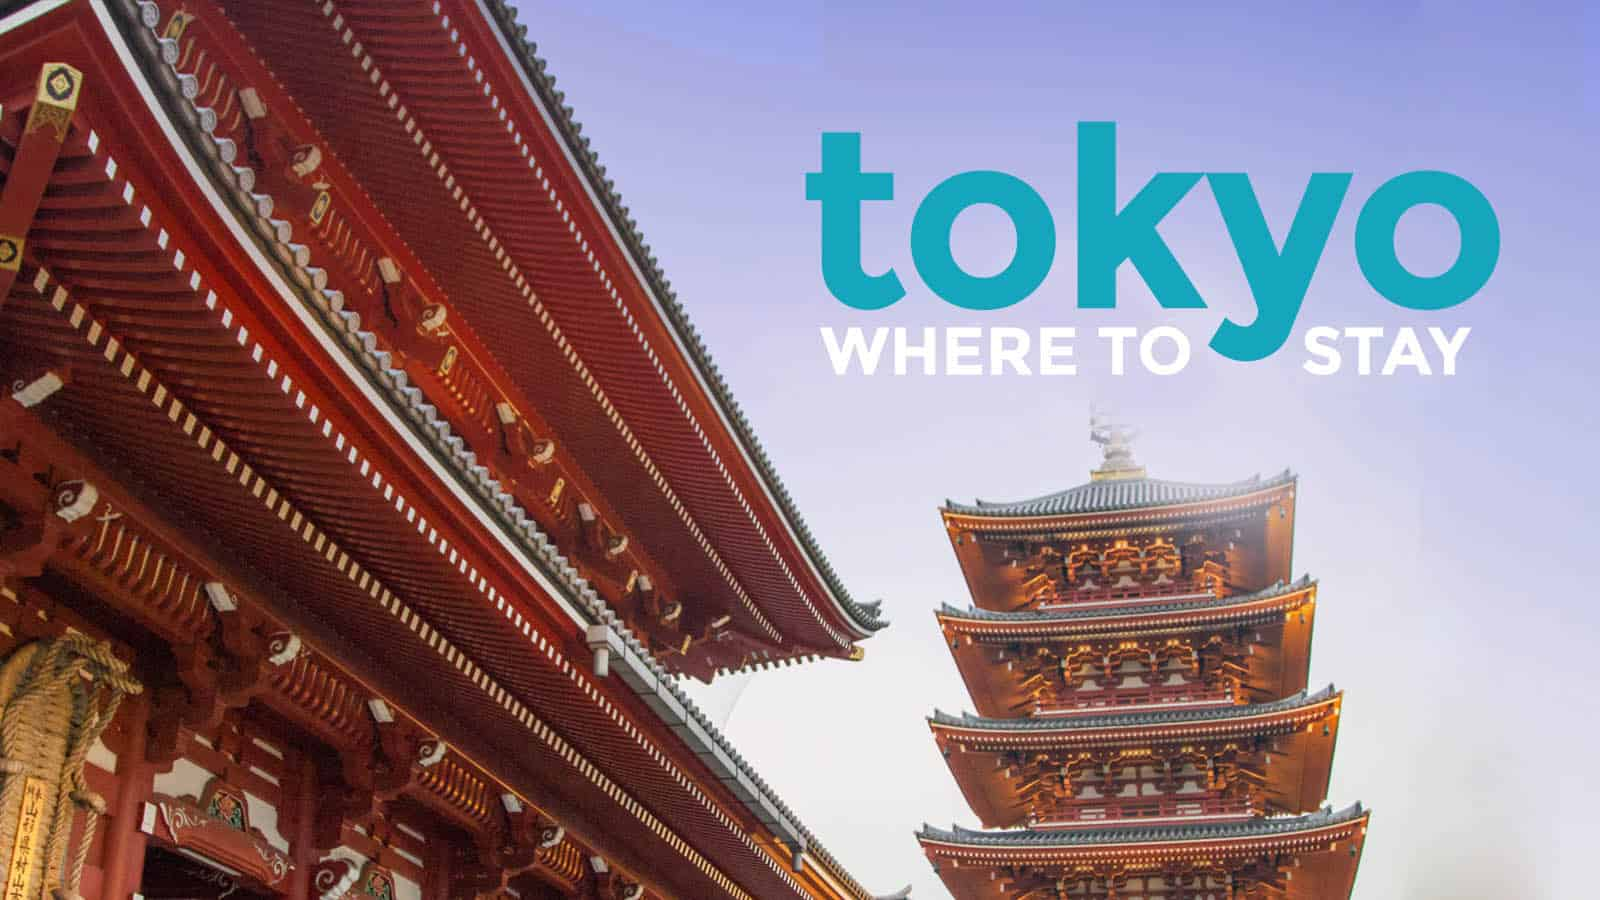 Where To Stay In Tokyo  The Poor Traveler Blog. Small Car In The World Mercedes Benz Gl Price. Geico Car Insurance Review Usc Norris Cancer. Sacramento Plumbing Contractors. Registered Trademark Logo Bank Cards Services. Dish Tv Packages Deals Log Monitoring Service. Cerebral Palsy Communication What Is A R N. St Louis Cable Companies Toyota Dealers In La. Cloth Diapers Vs Disposable Diapers Cost